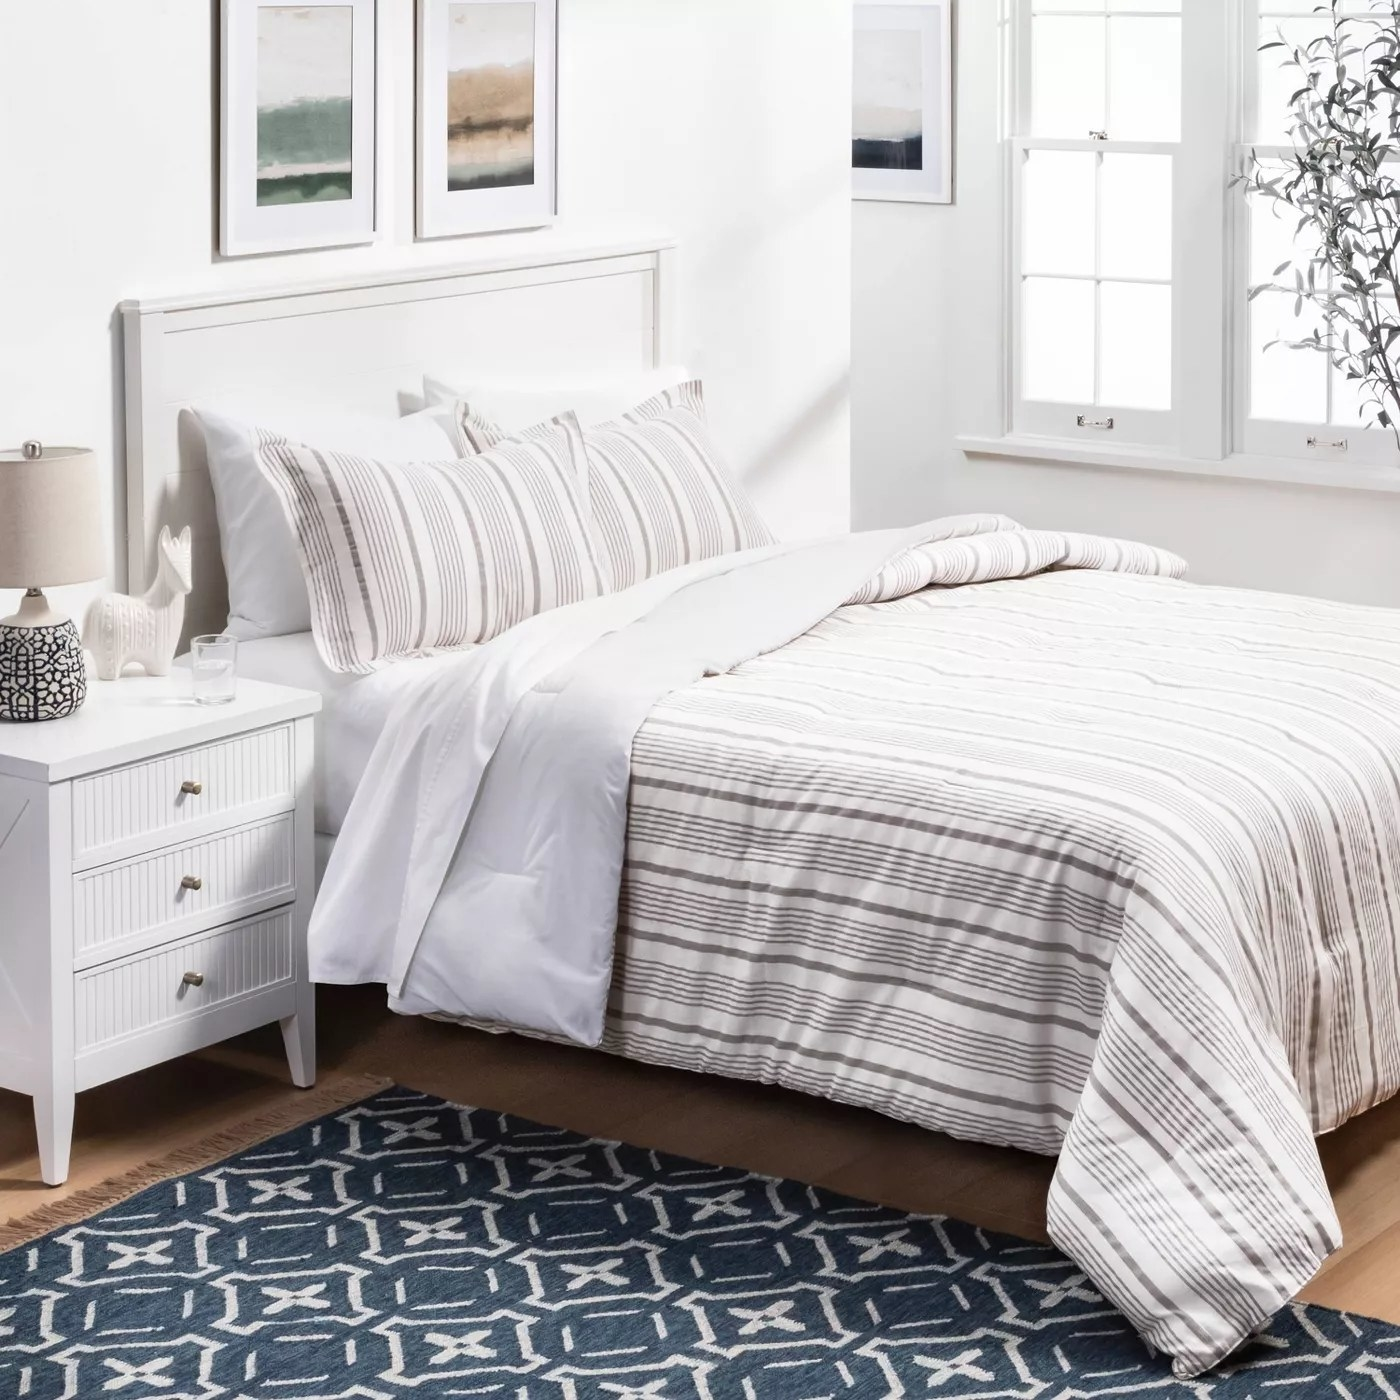 The white and gray comforter and shams